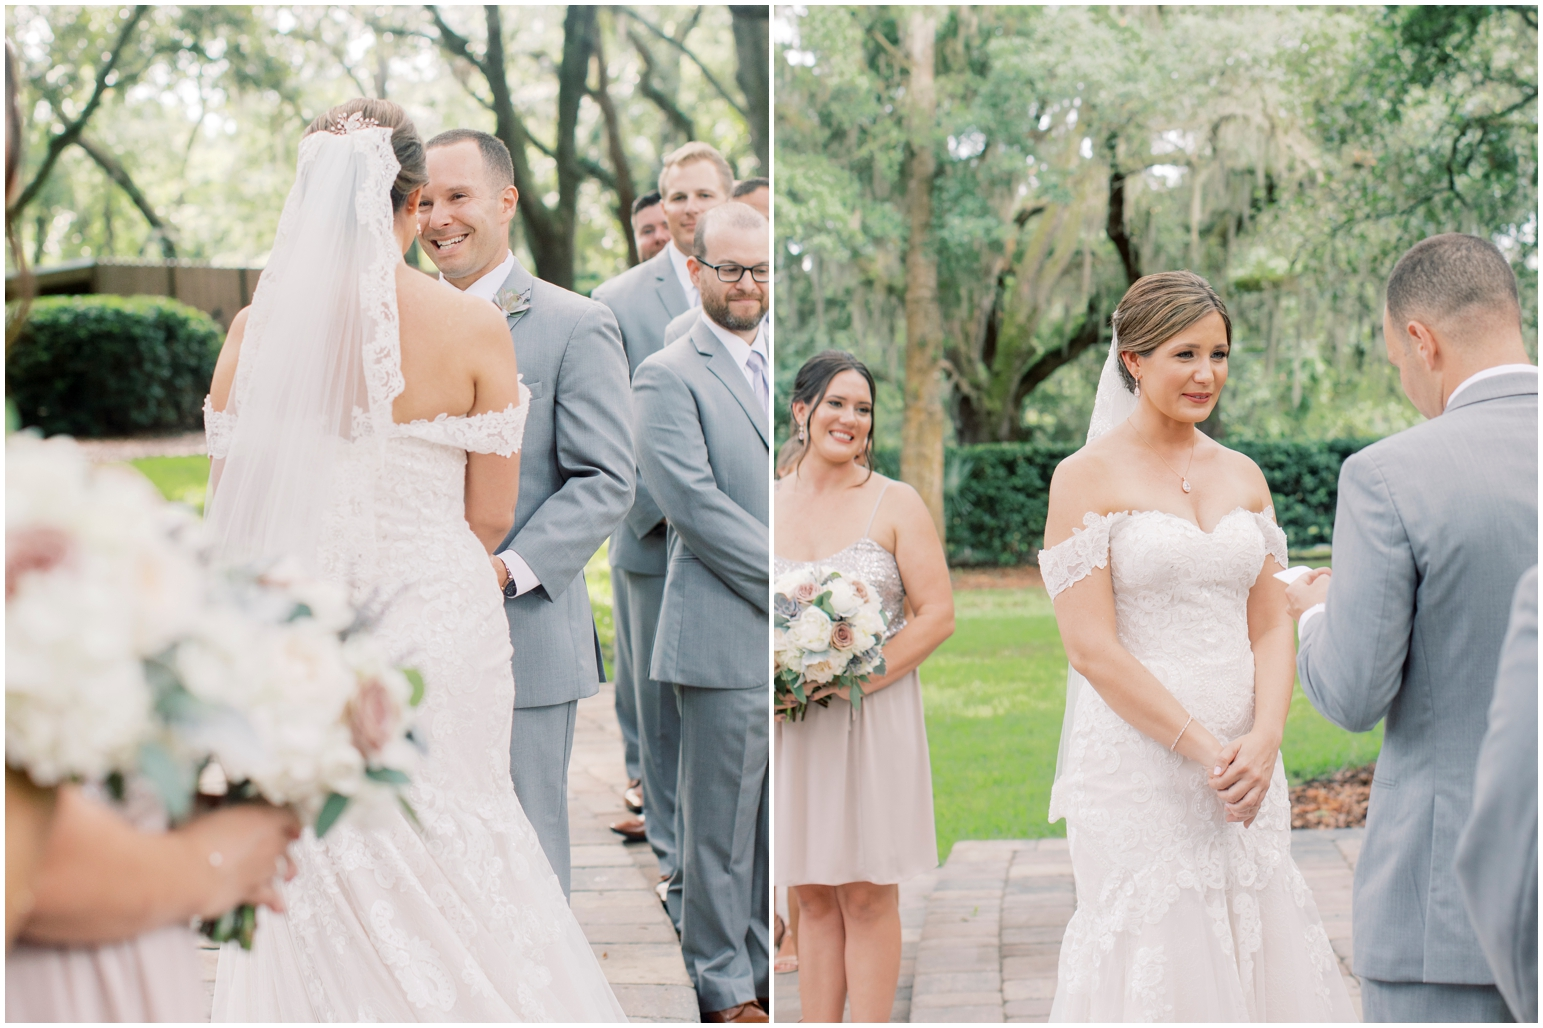 Lisa Silva Photography- Jacksonville, St Augustine, Fernandina Beach, Amelia Island, Ponte Vedra Beach, North East Florida Fine Art Film Photographer- Ashley and Shawn's wedding at bowing oaks plantation_0063.jpg